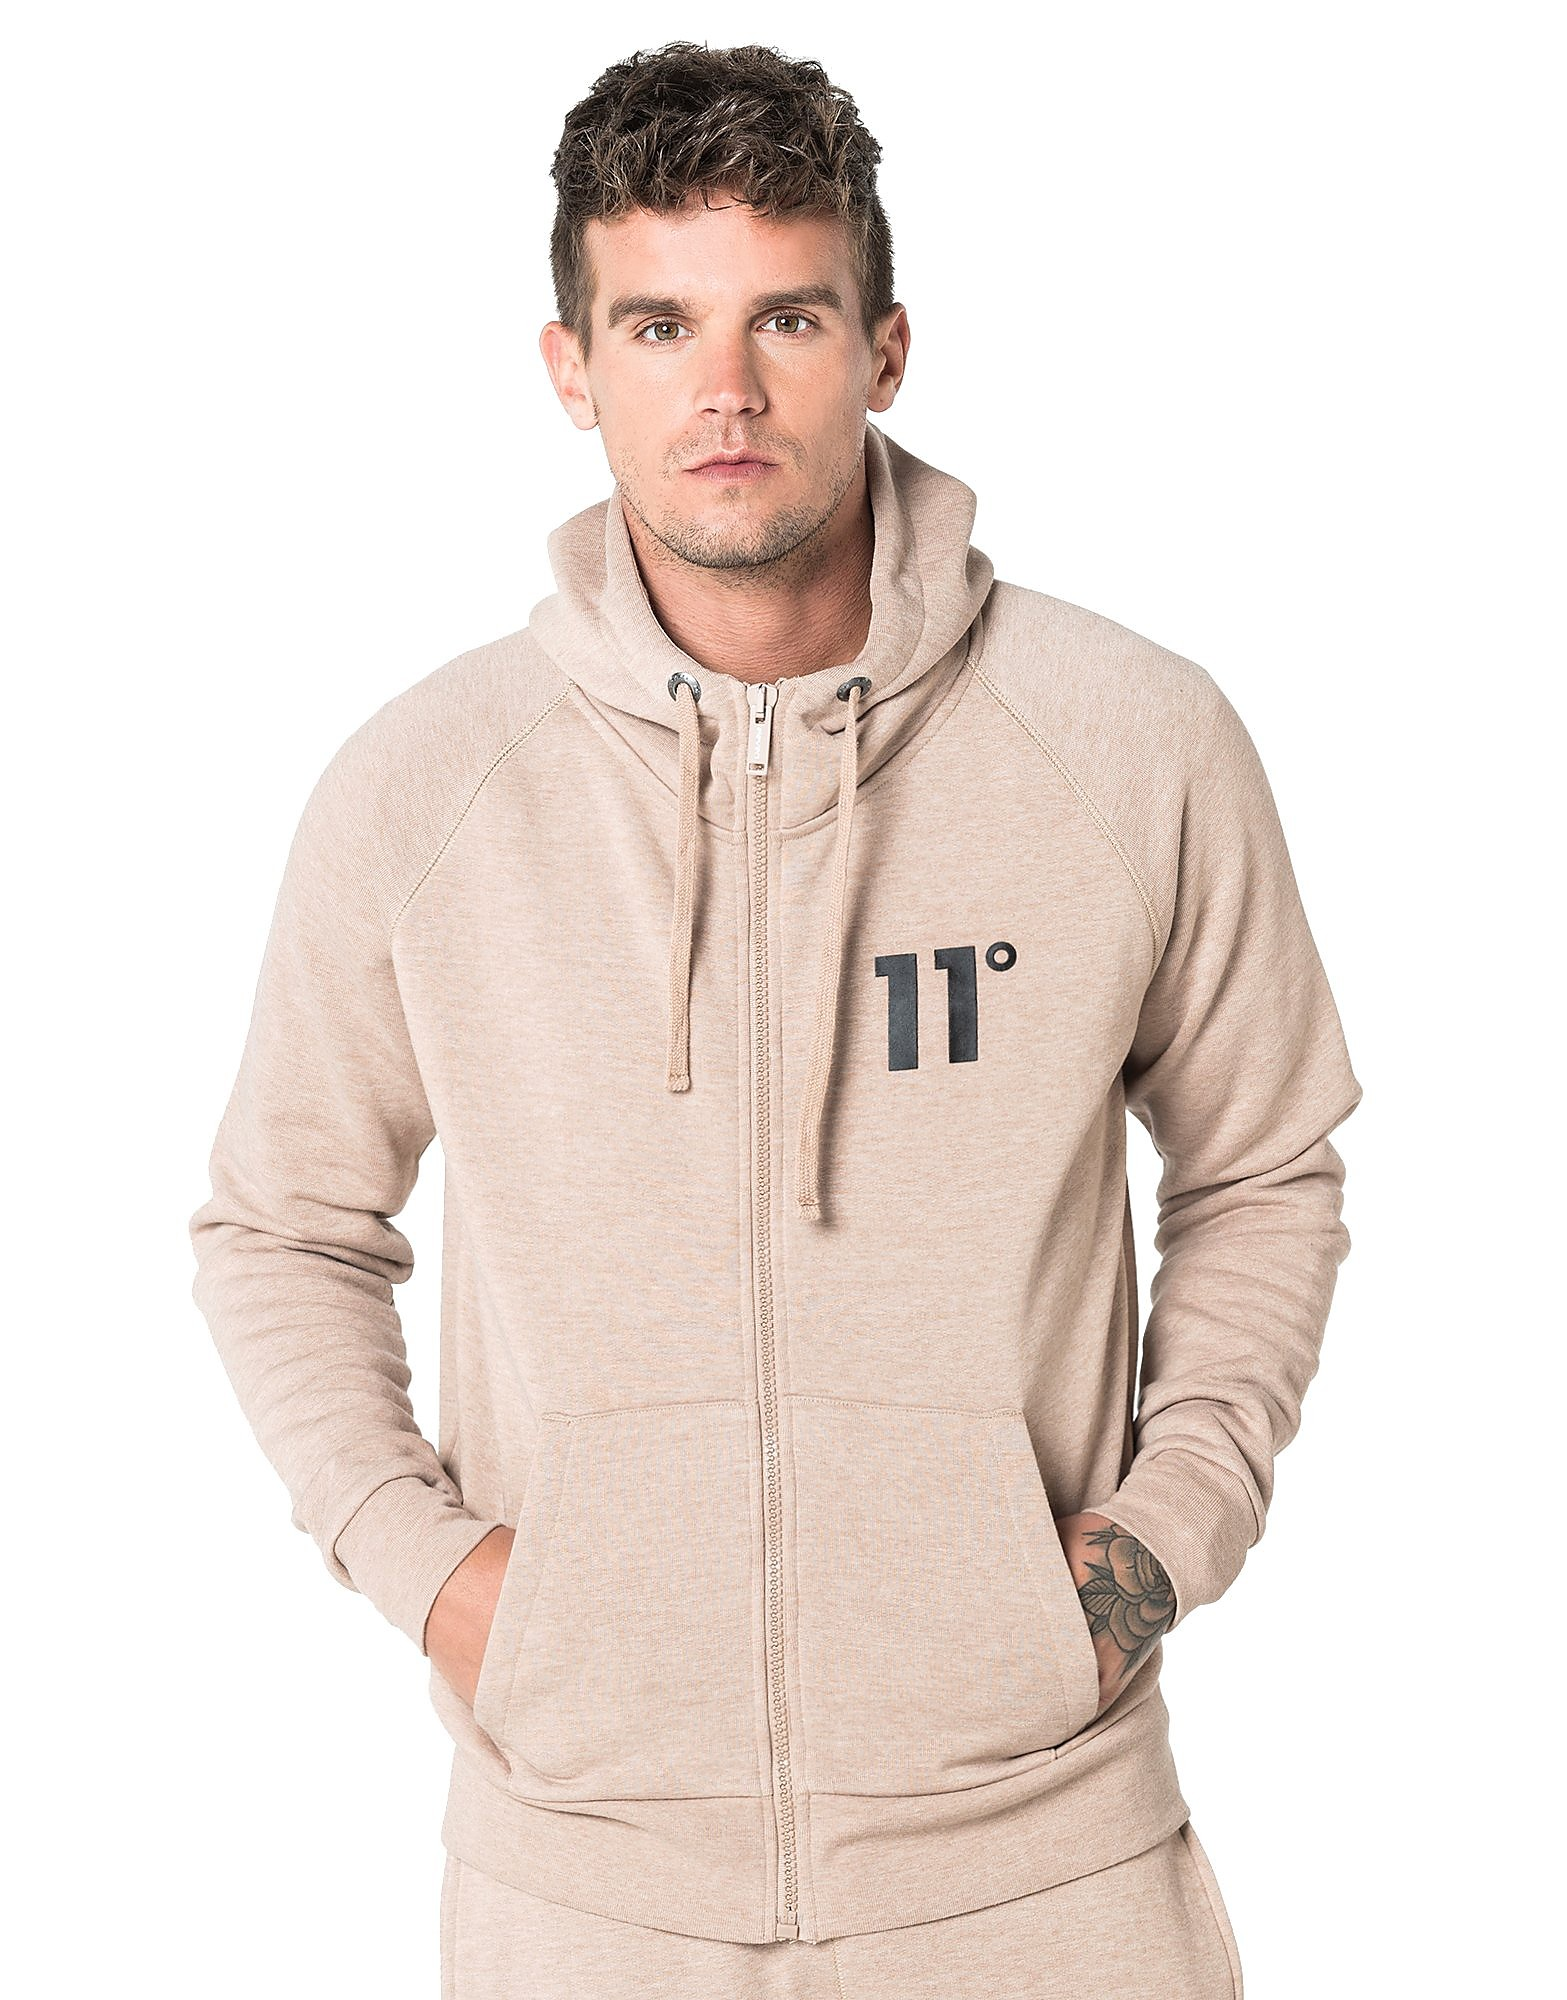 Image de 11 Degrees Sweat Core Homme - Tan, Tan